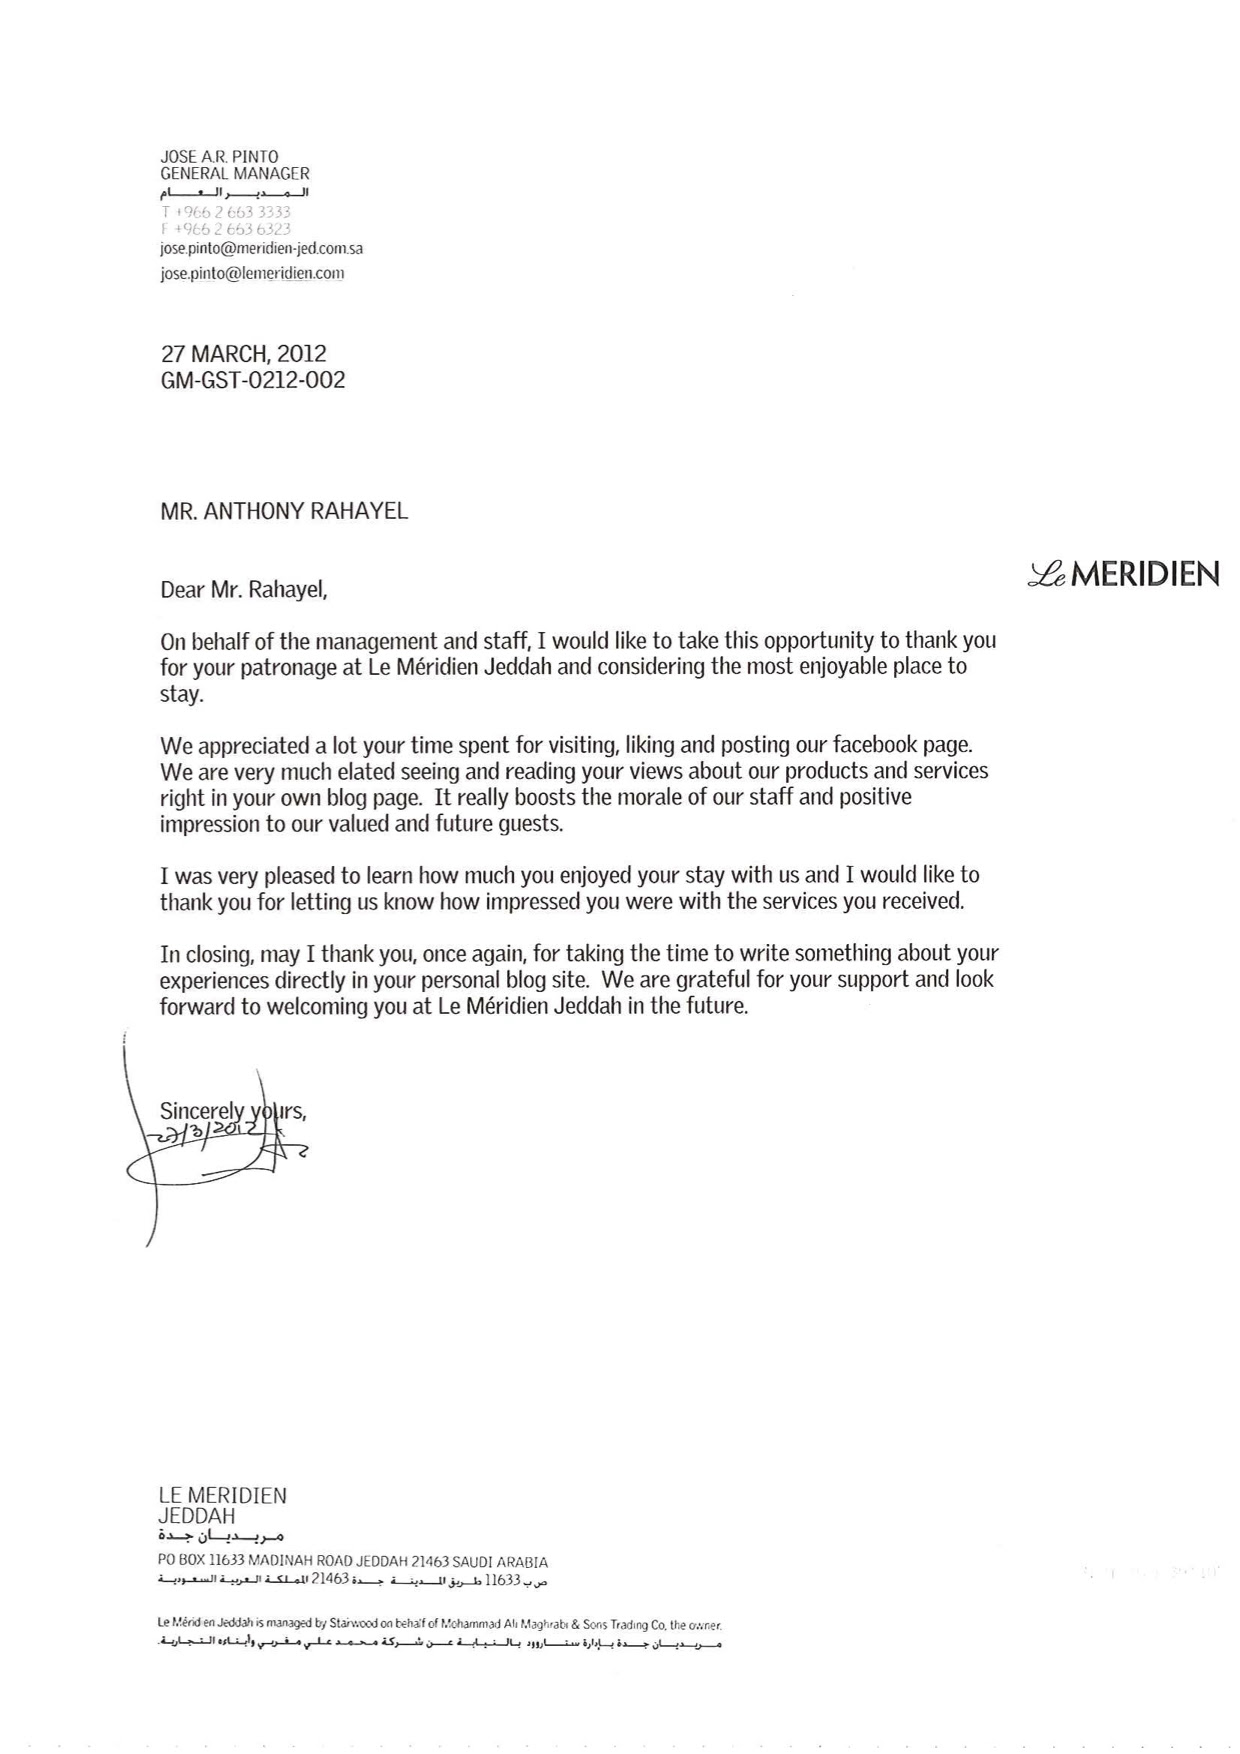 A Thank You Letter From Le Meri N Jeddah